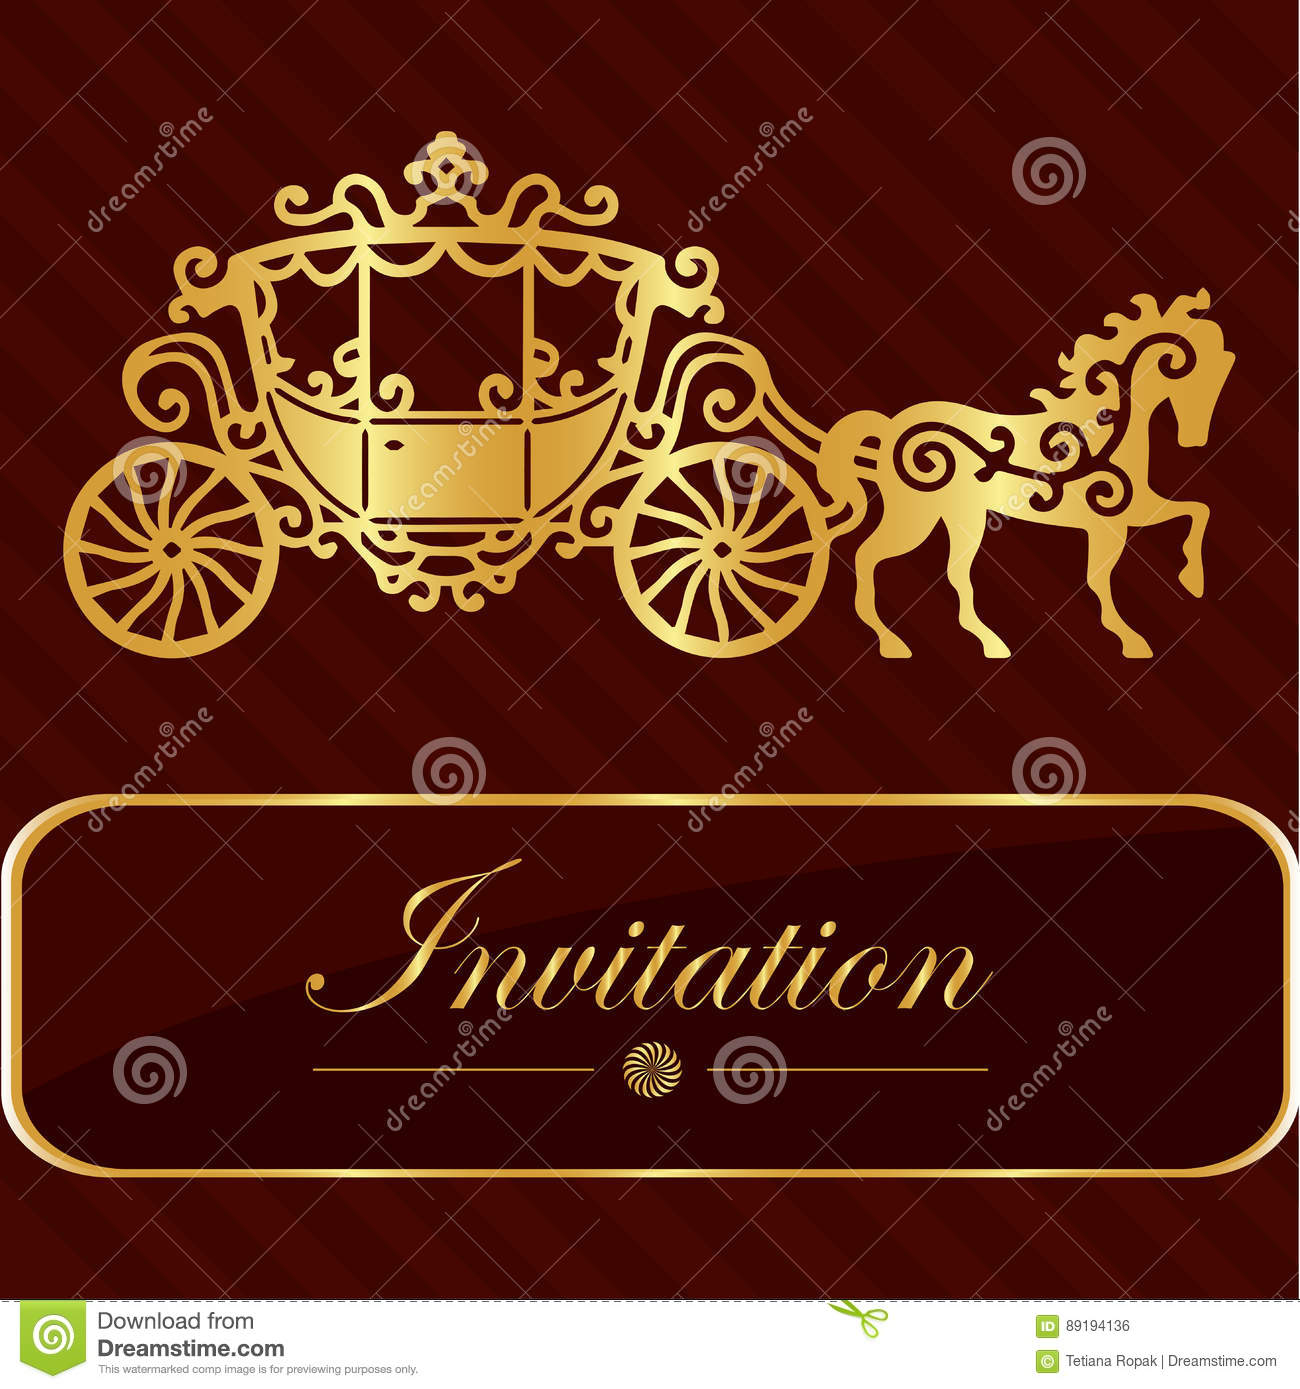 Invitation Card With Golden Lettering Vintage Horse Carriage Design Good Idea For Template